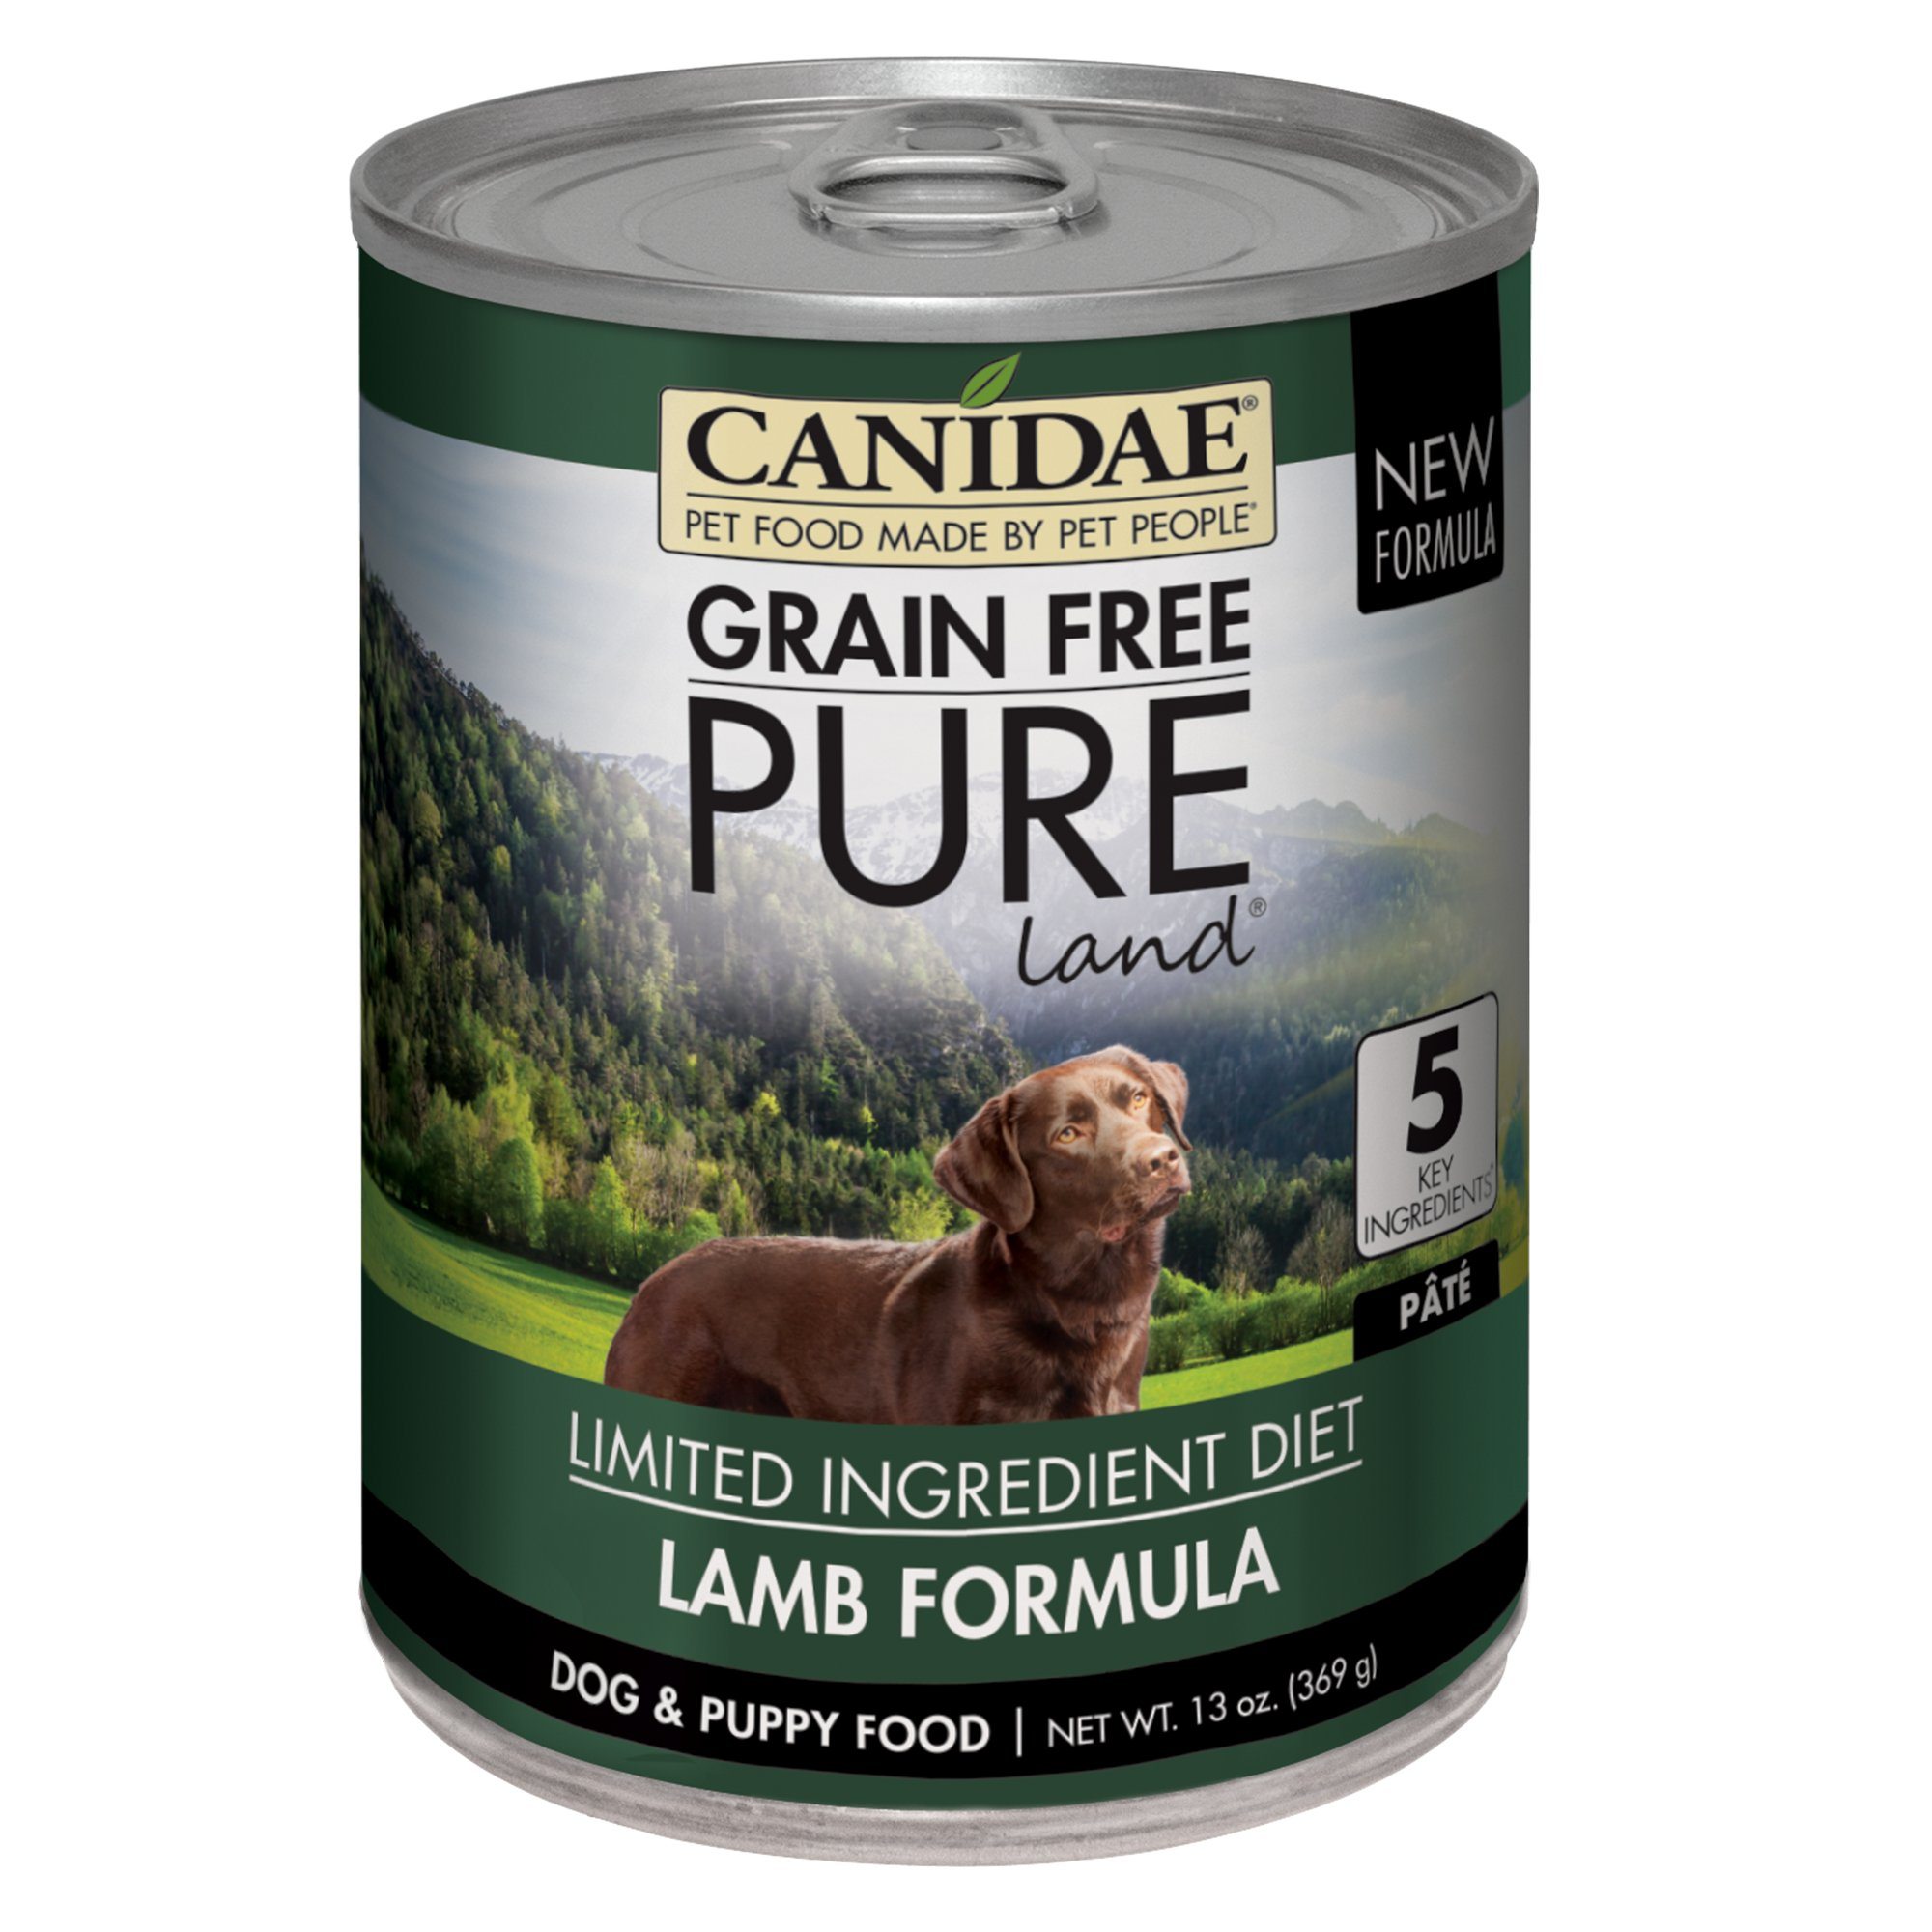 Canidae Grain Free Pure Land Lamb Canned Dog Food